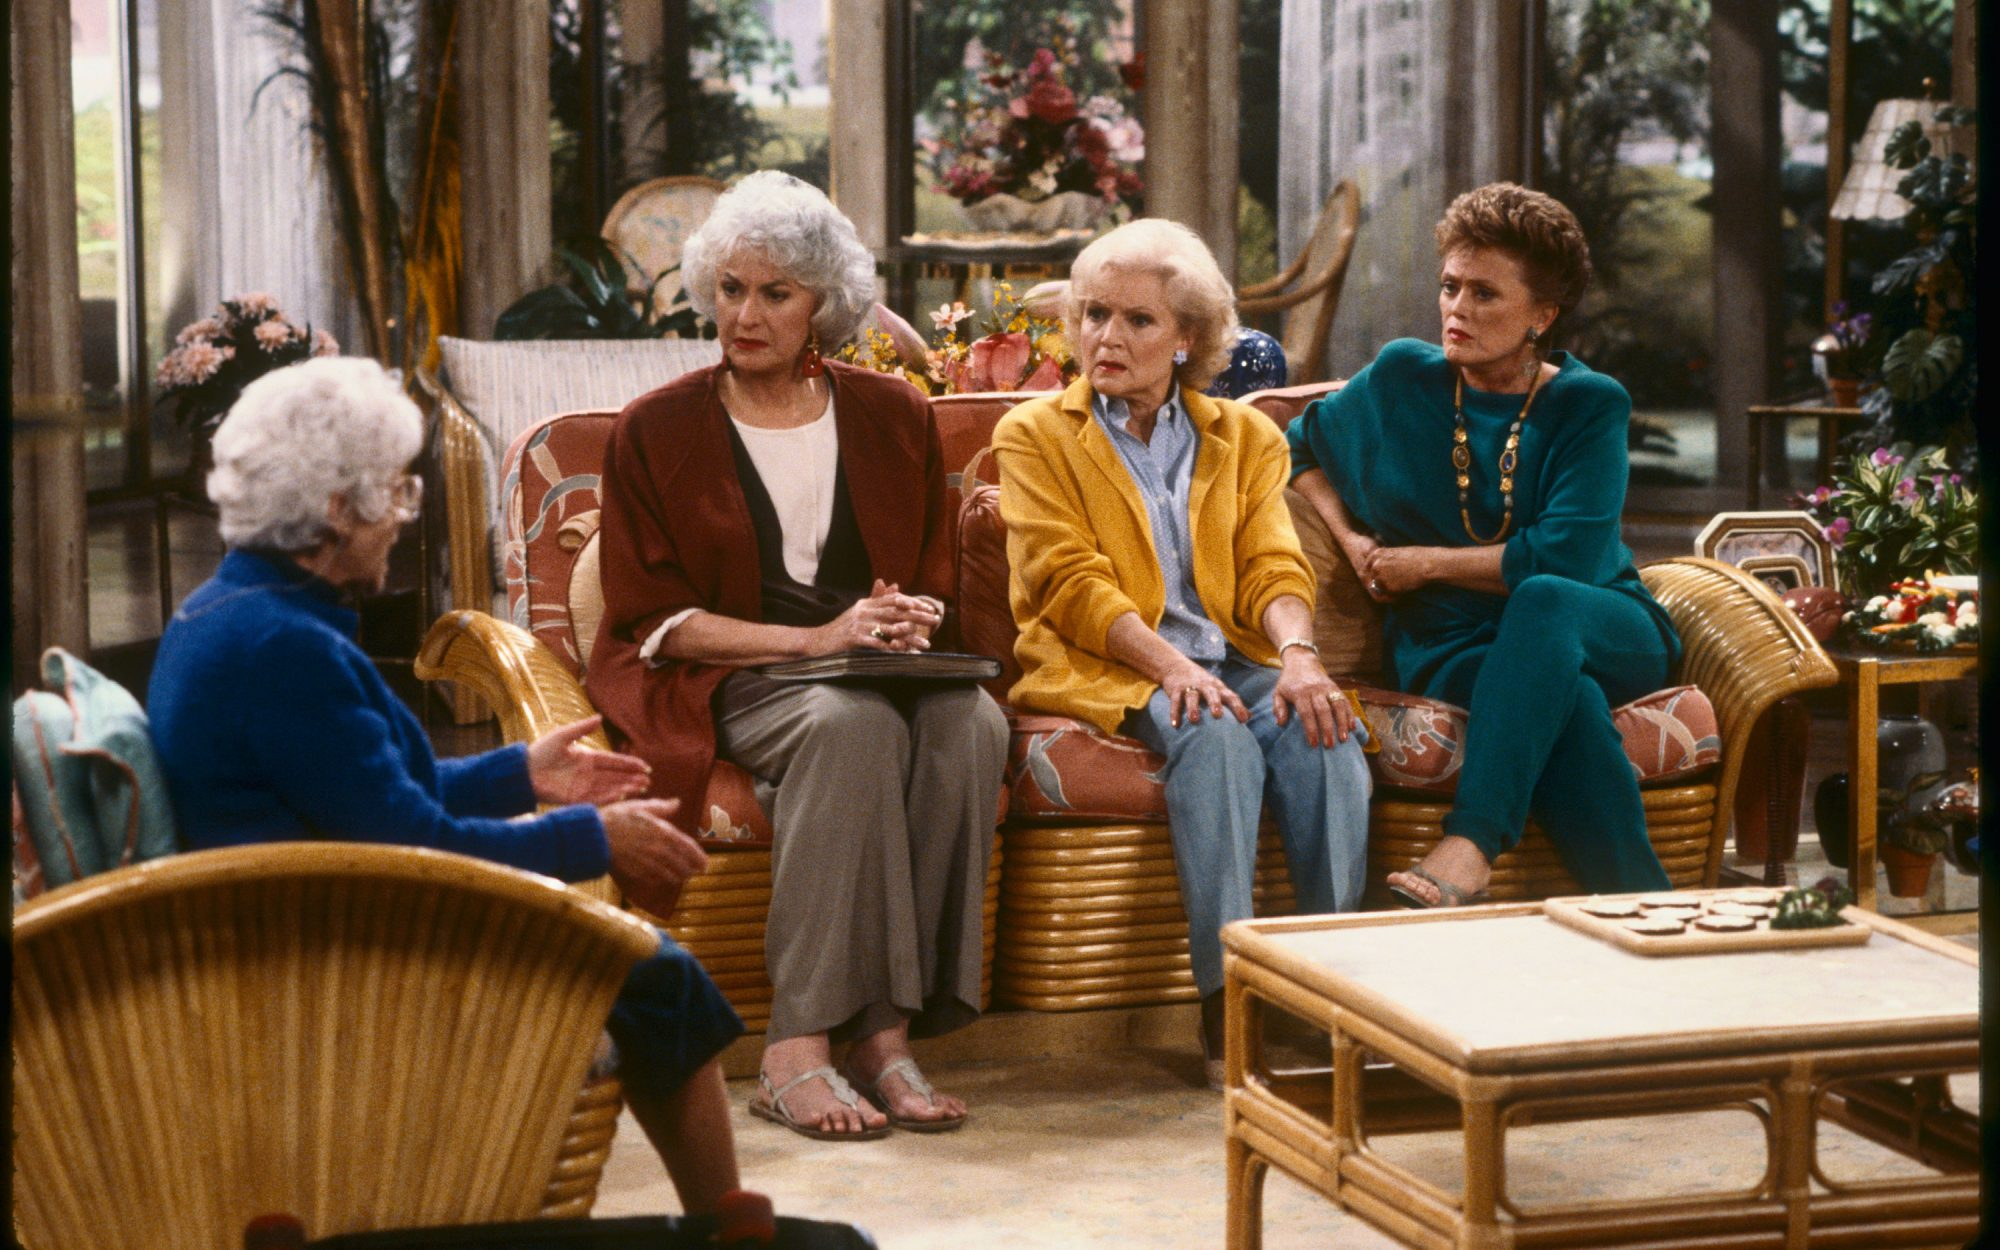 There's a 'Golden Girls' Themed Murder Mystery Dinner in Pennsylvania